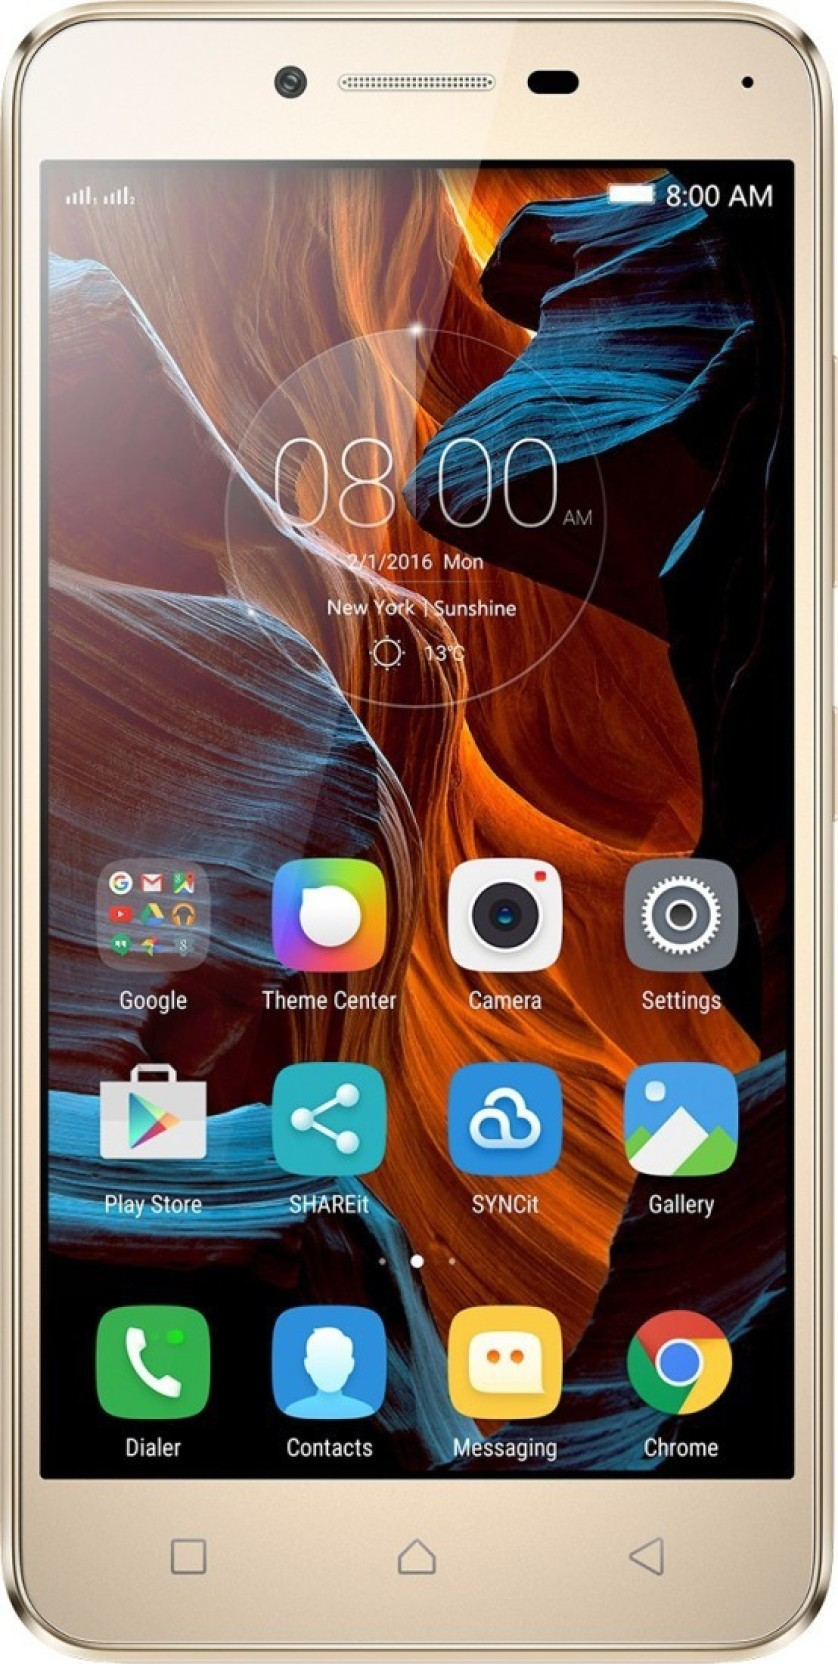 Lenovo Vibe K5 Plus (Gold, 16 GB) Online at Best Price Only On ...